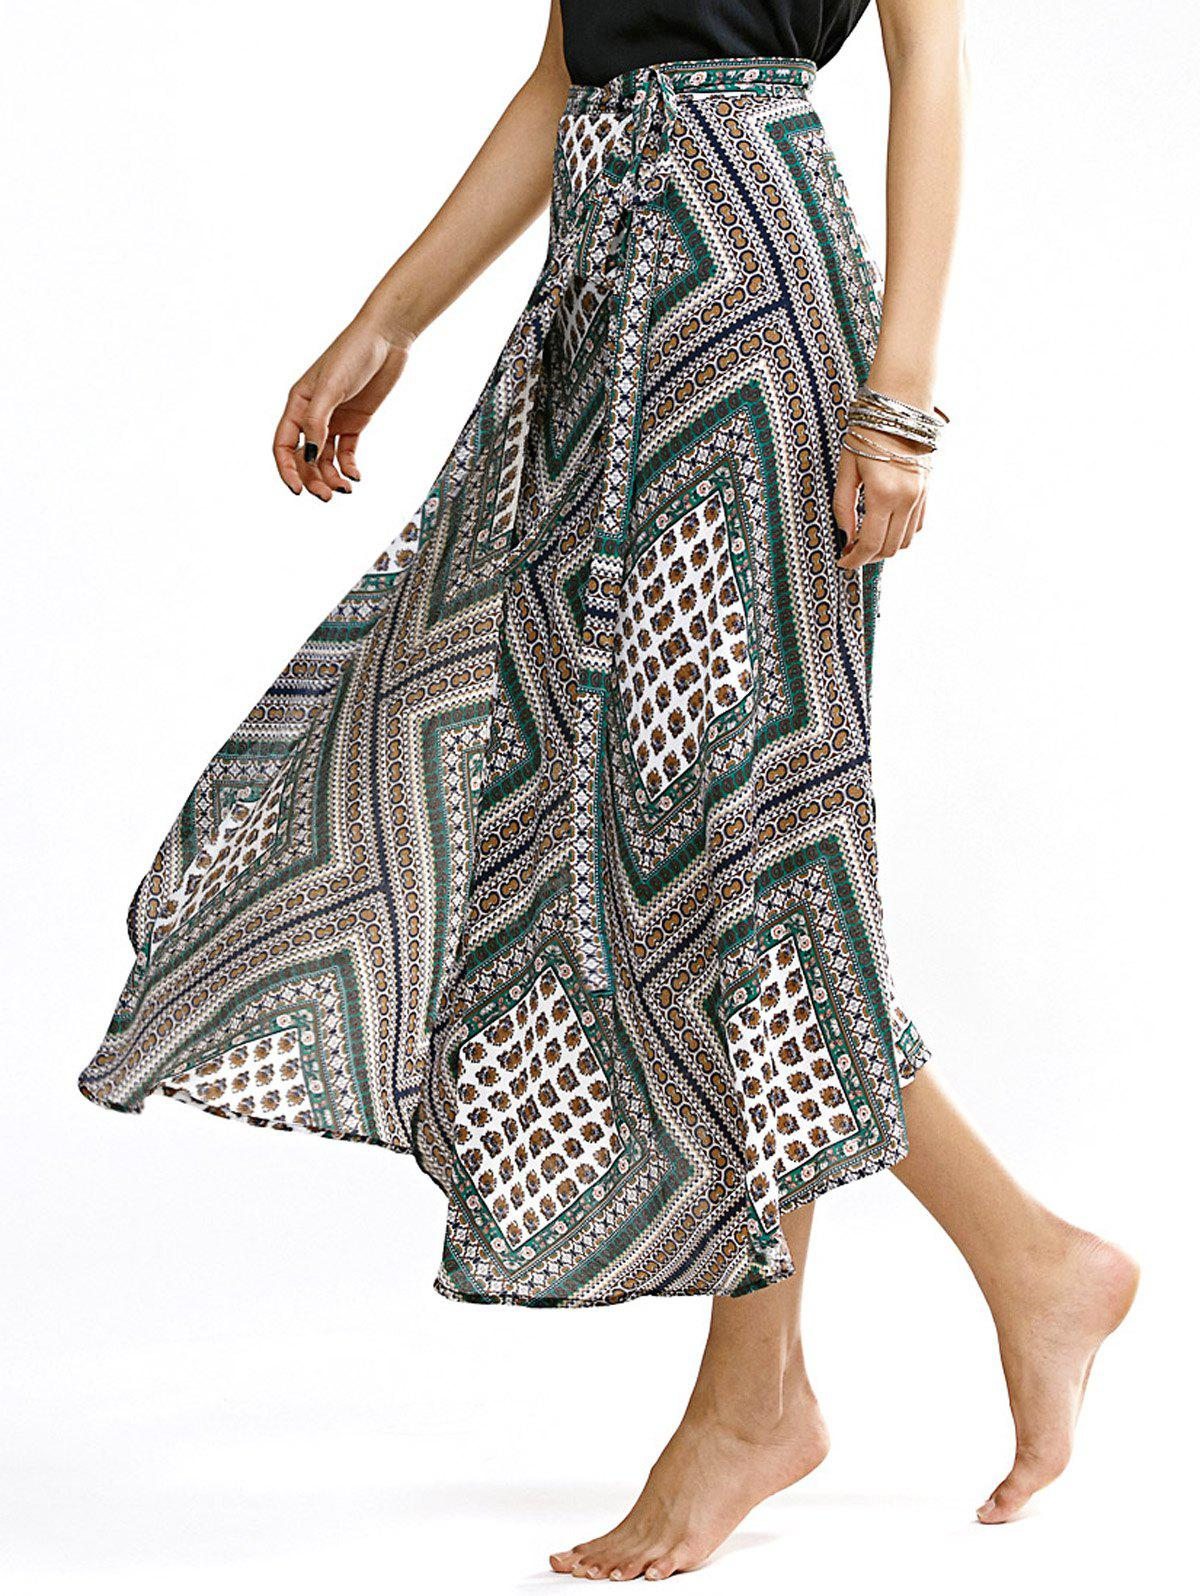 Retro Style High Waist Printed Wrap Skirt For Women